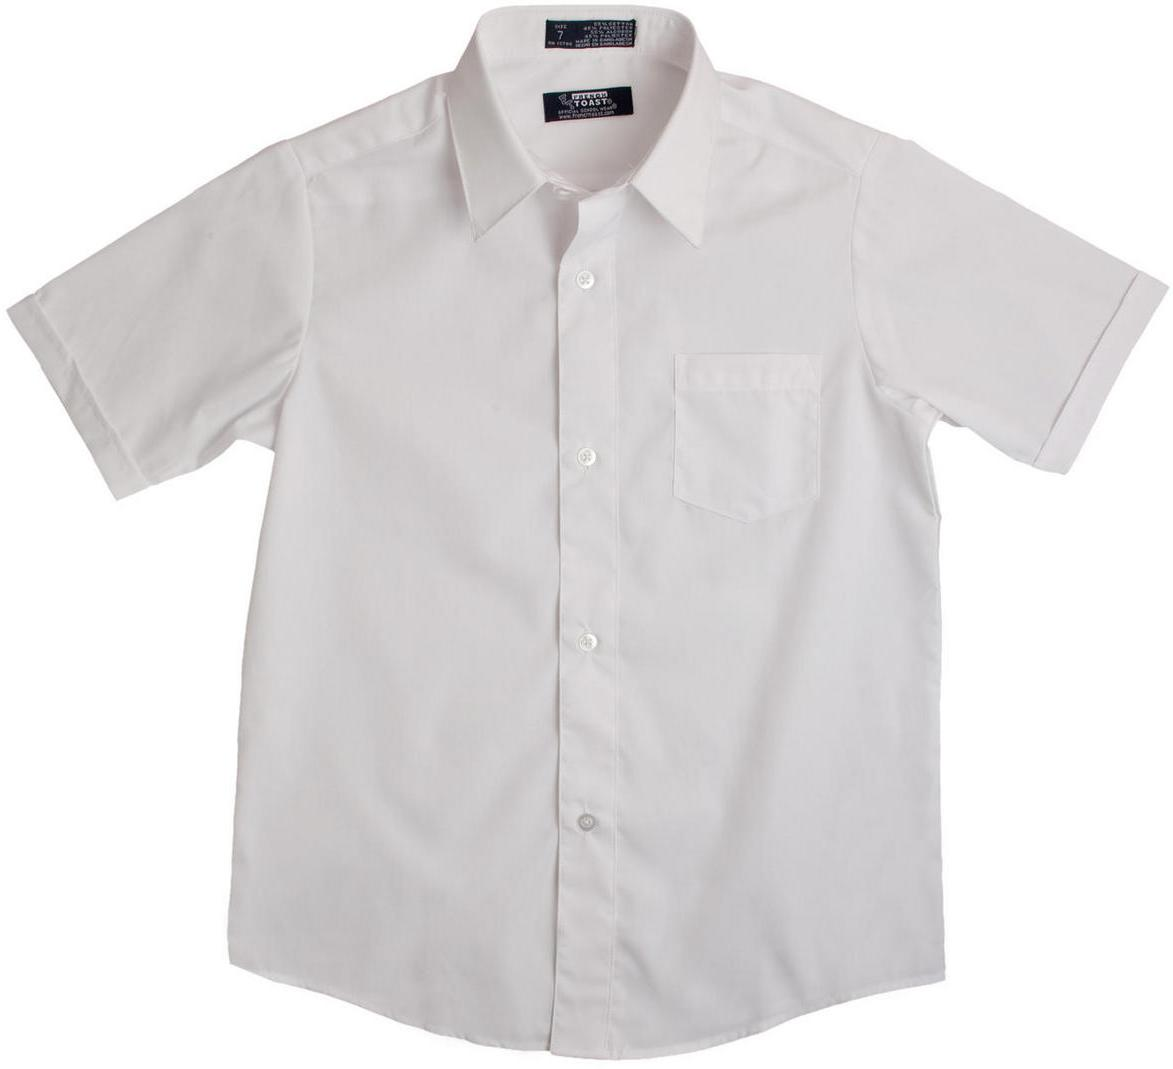 French Toast Boys White Short Sleeves Dress Shirt E9005